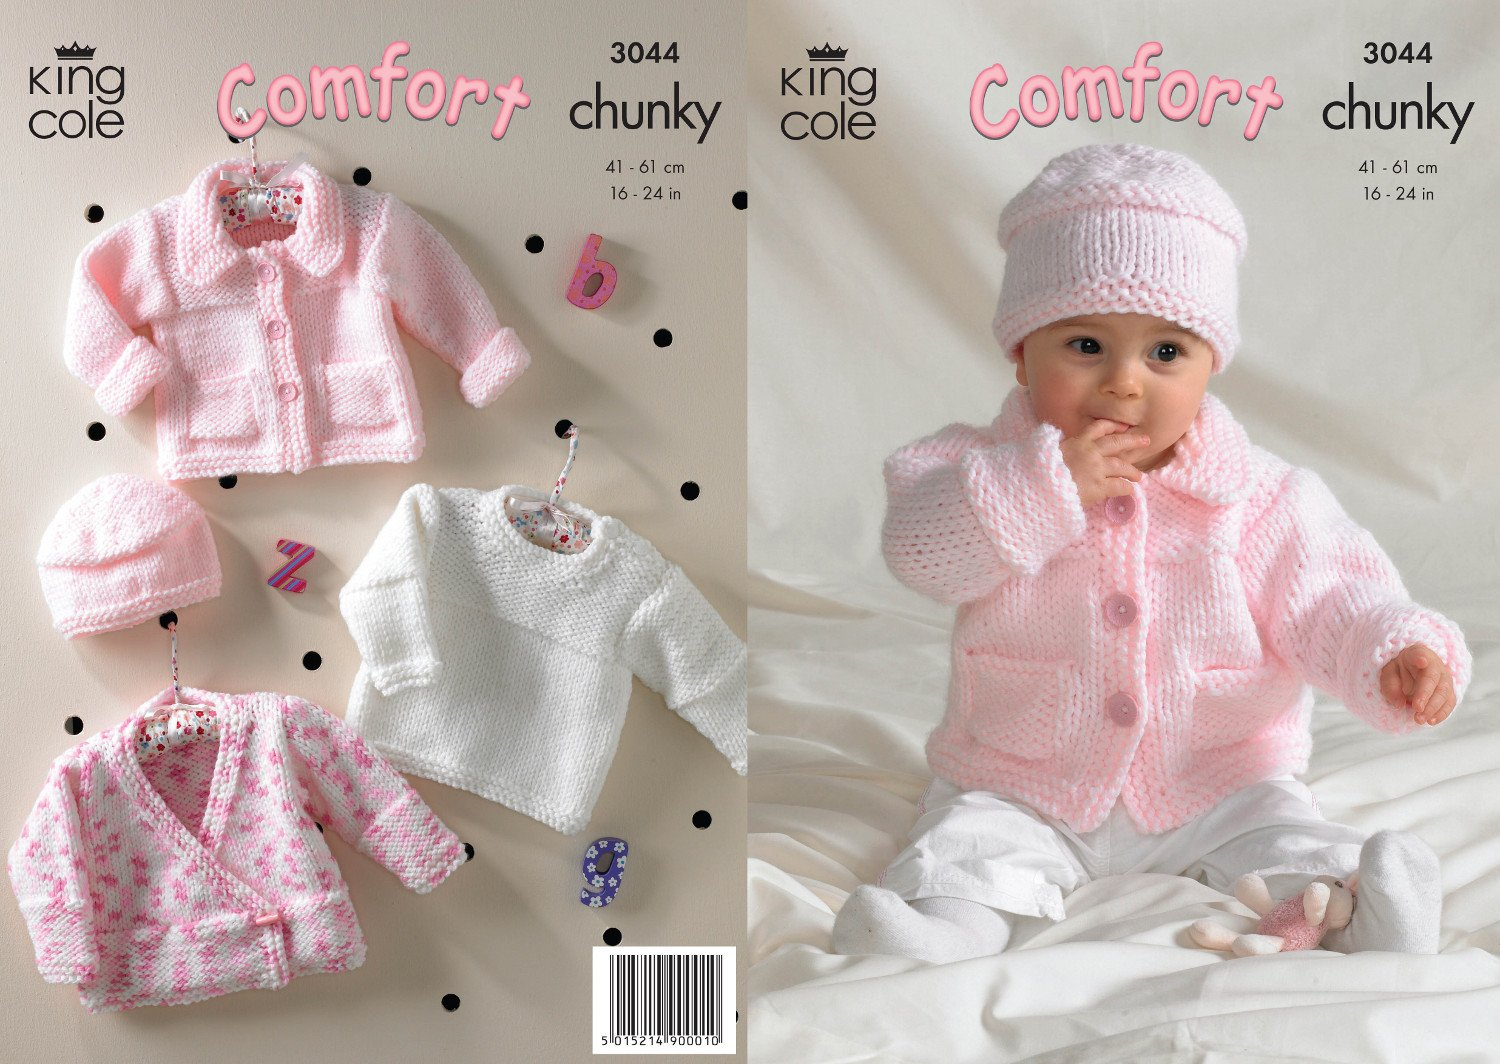 King cole comfort chunky knitting pattern childrens jacket sweater king cole comfort chunky knitting pattern childrens jacket sweater cardigan hat 3044 amazon kitchen home bankloansurffo Gallery